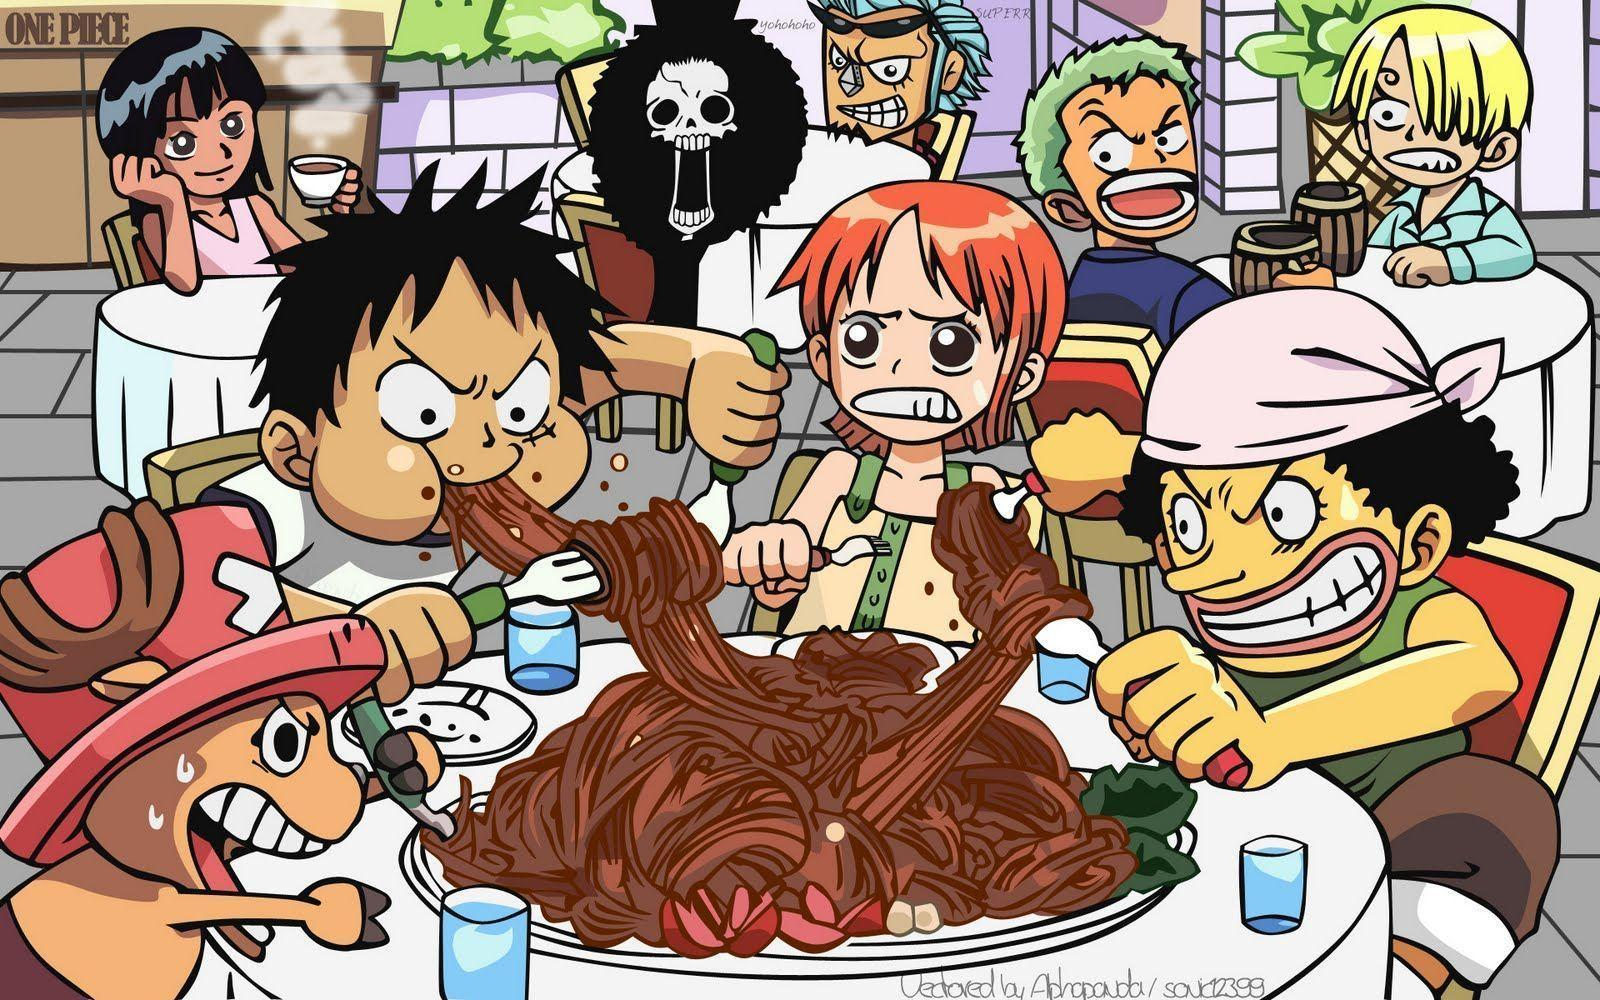 One Piece Chibi HD Image